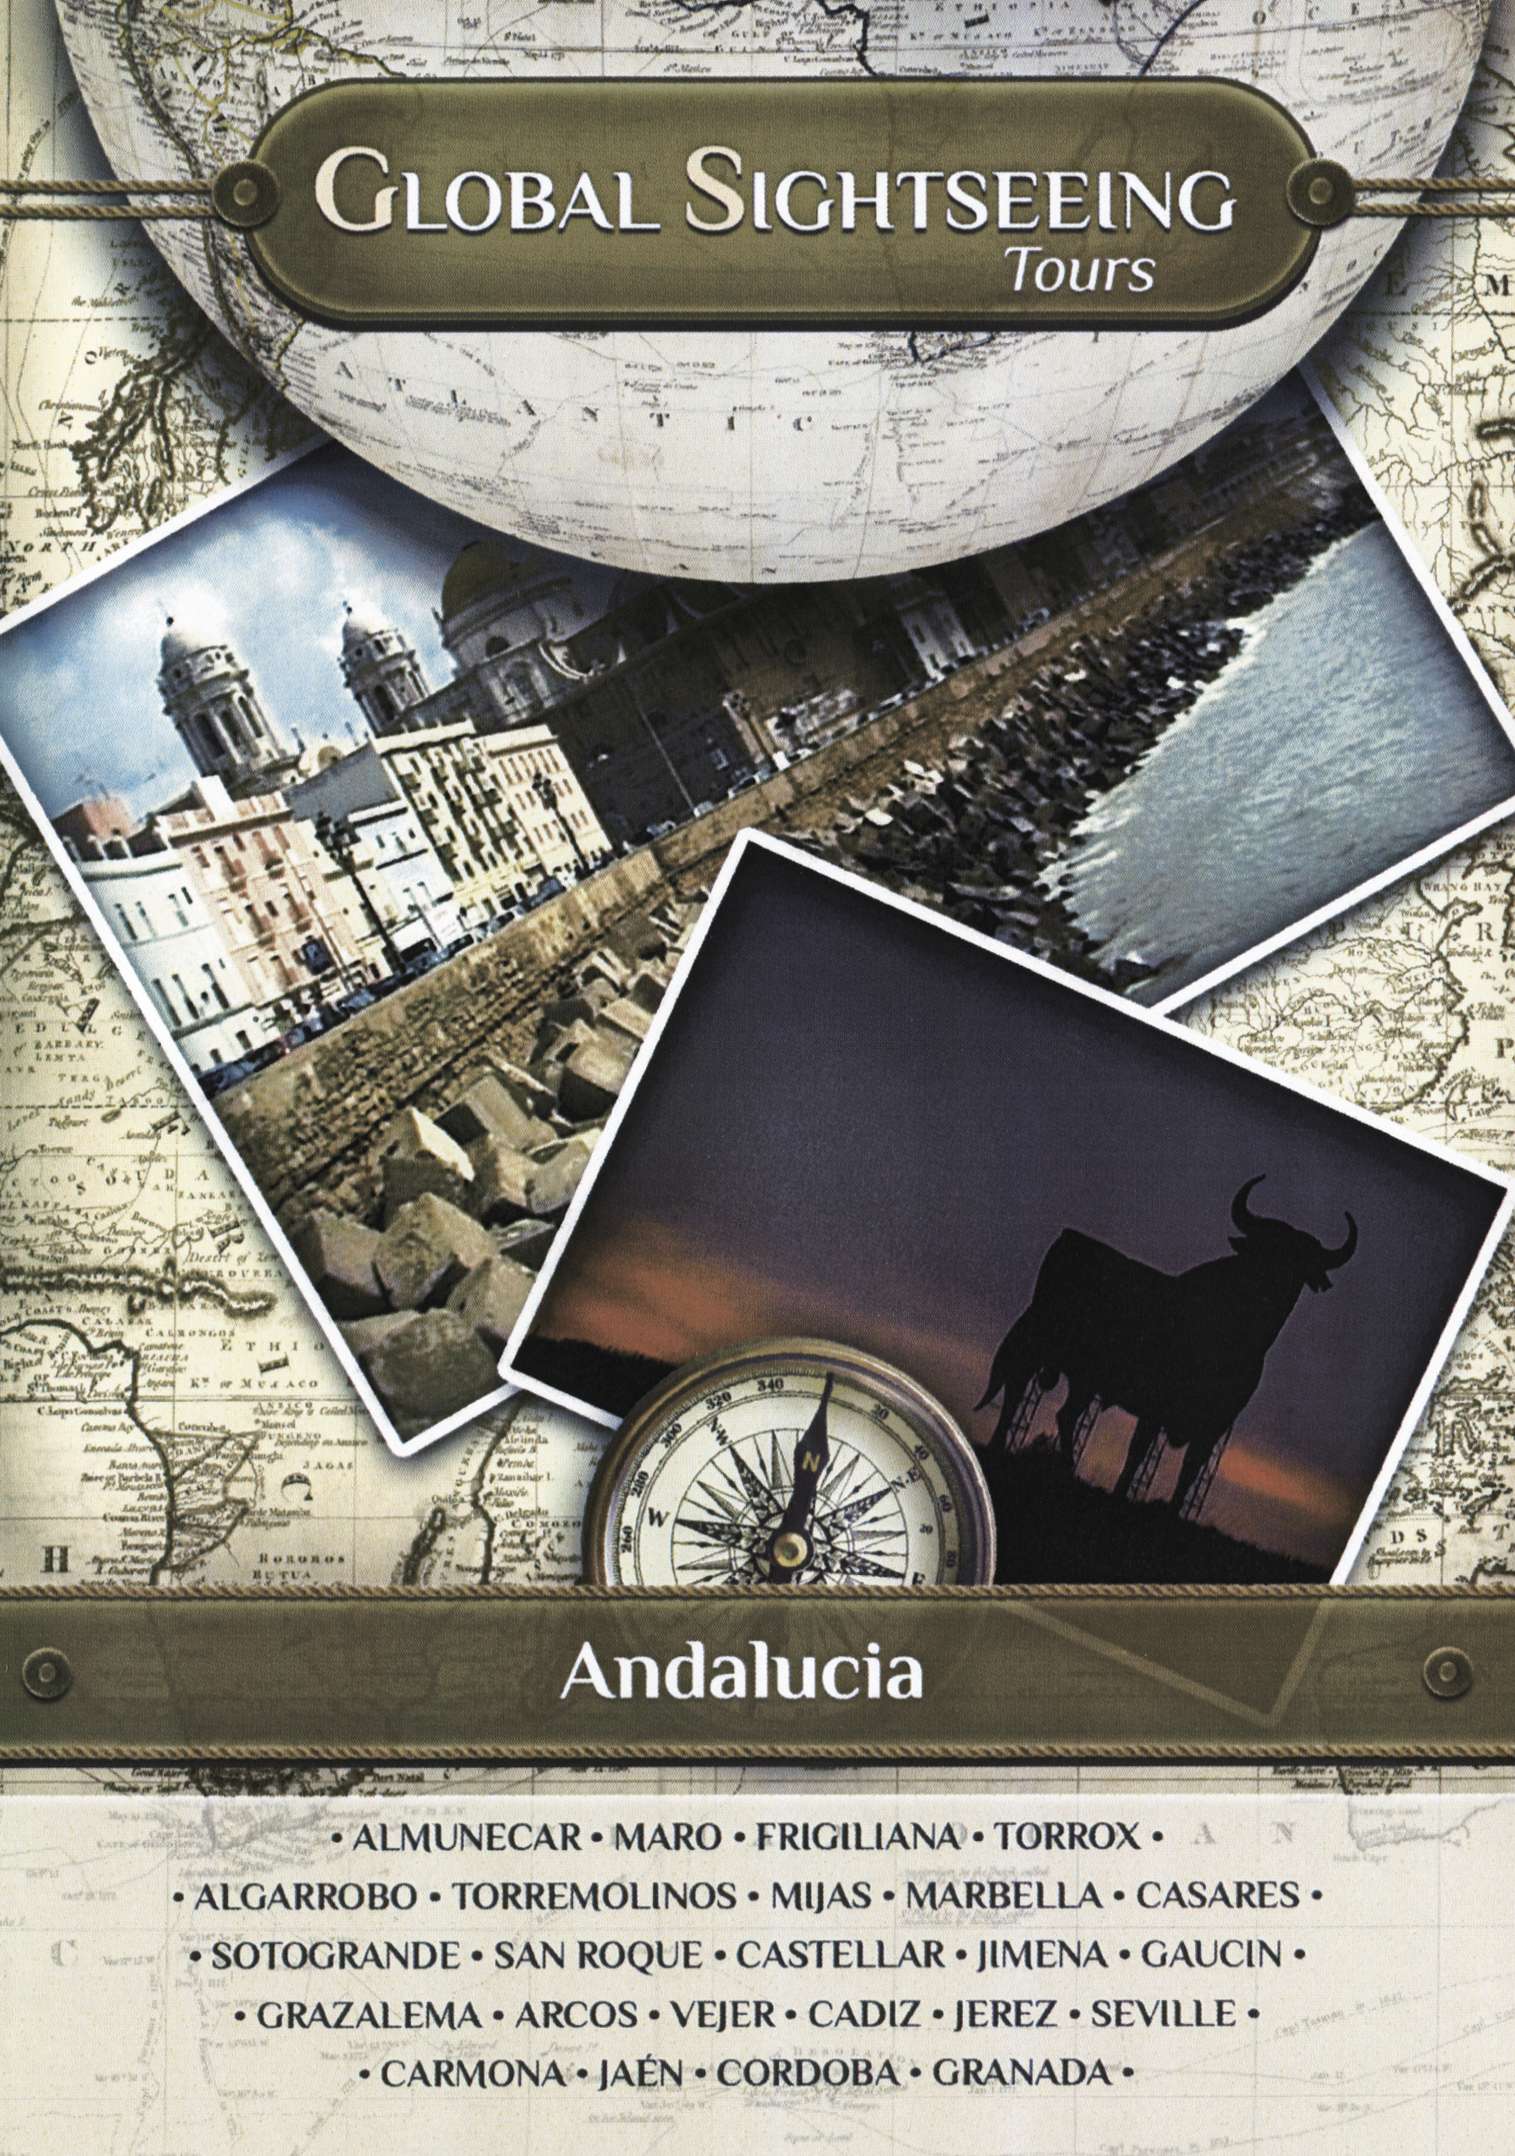 Global Sightseeing Tours: Andalucia